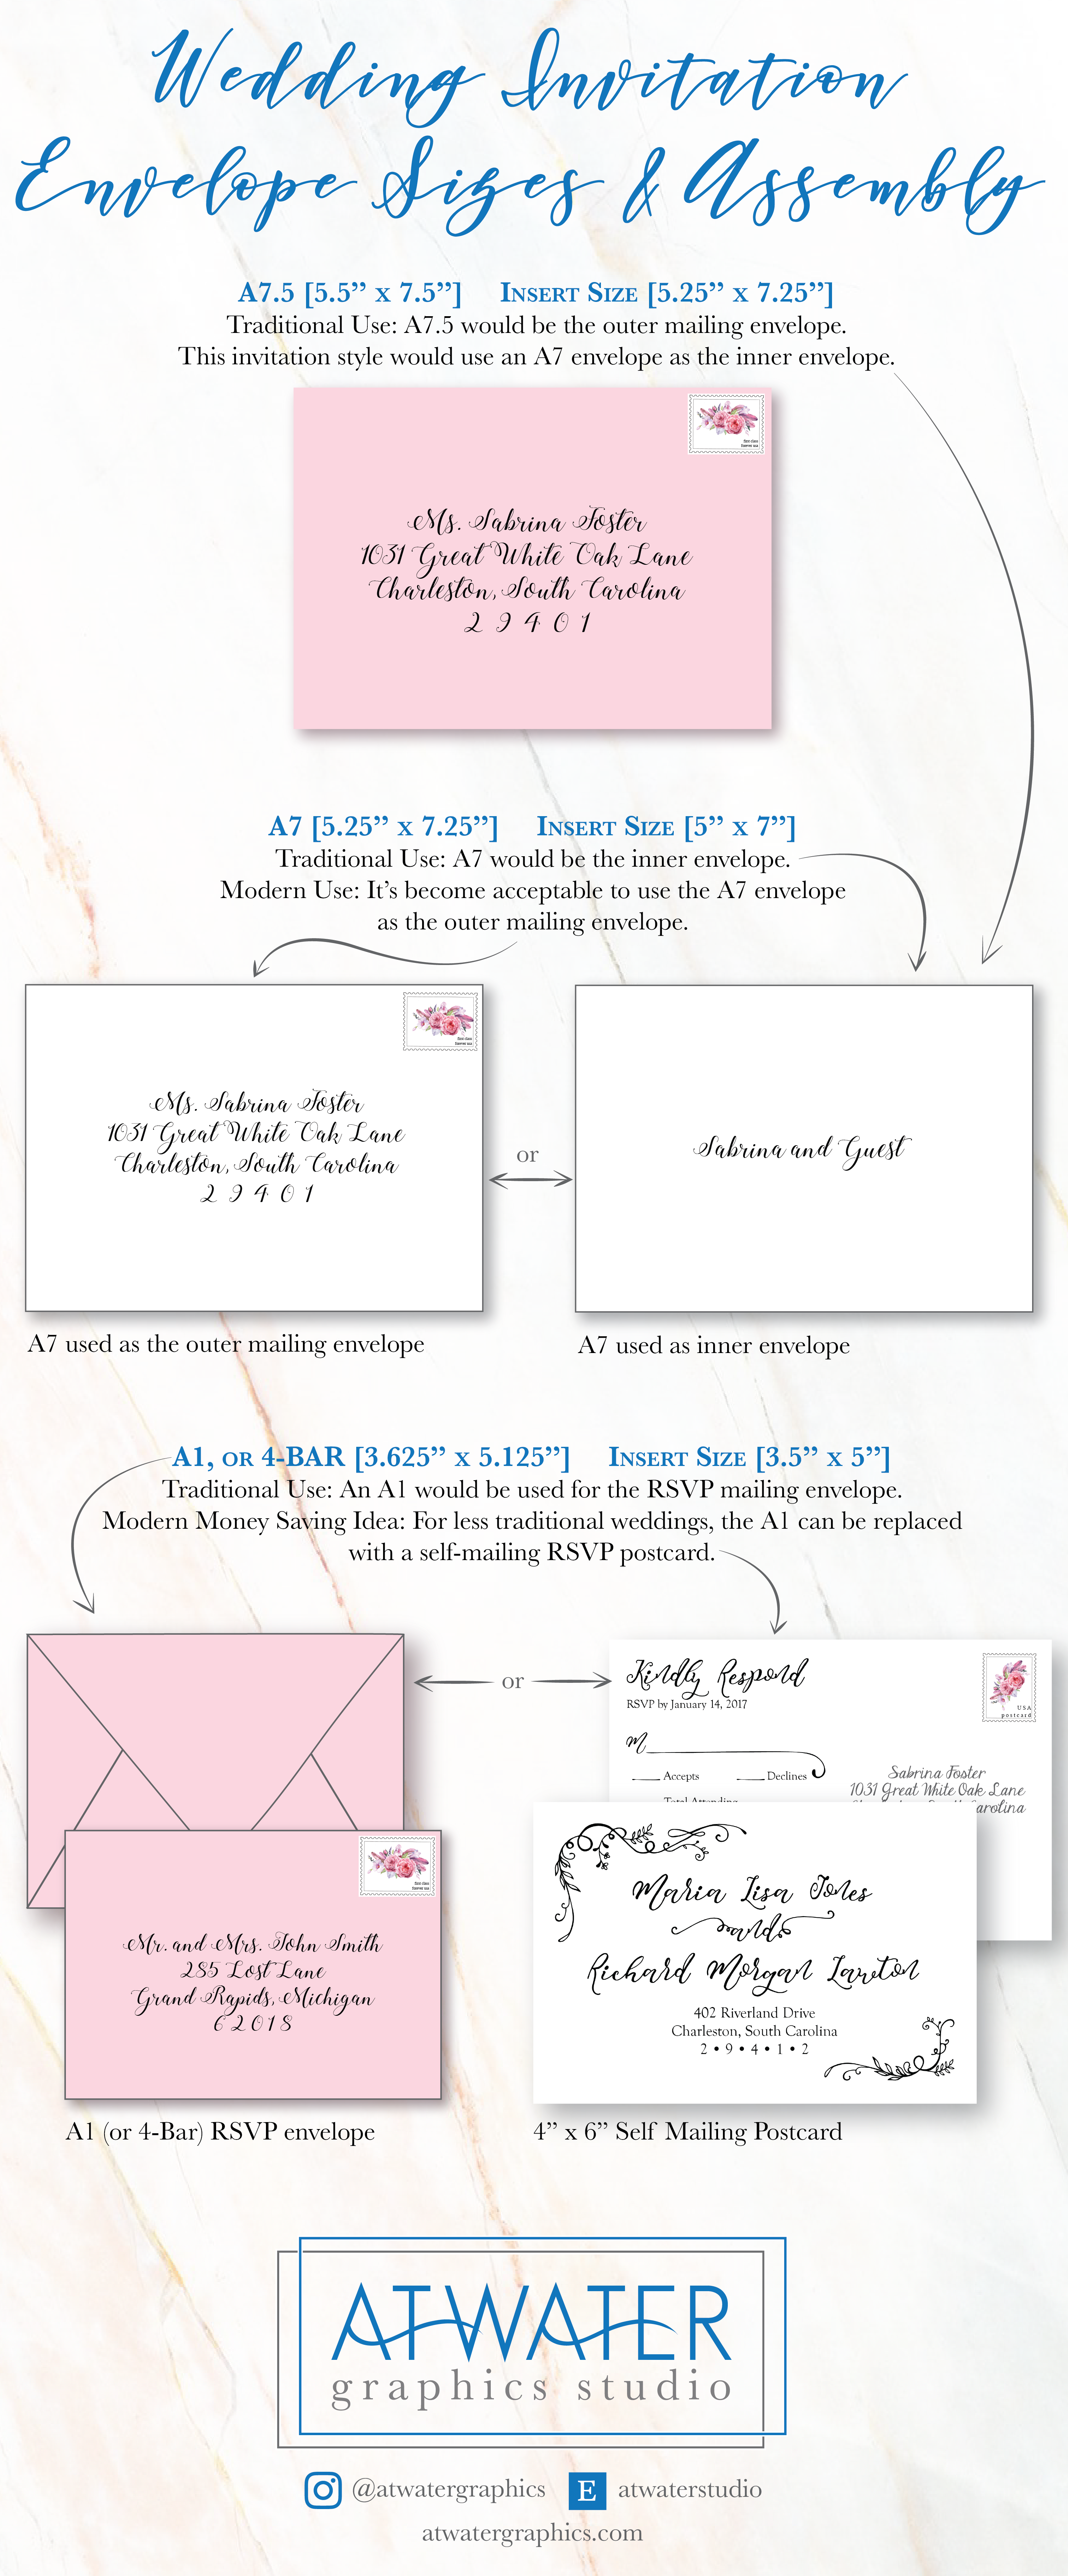 Tips on wedding invitation envelope sizes and the inserts that match ...